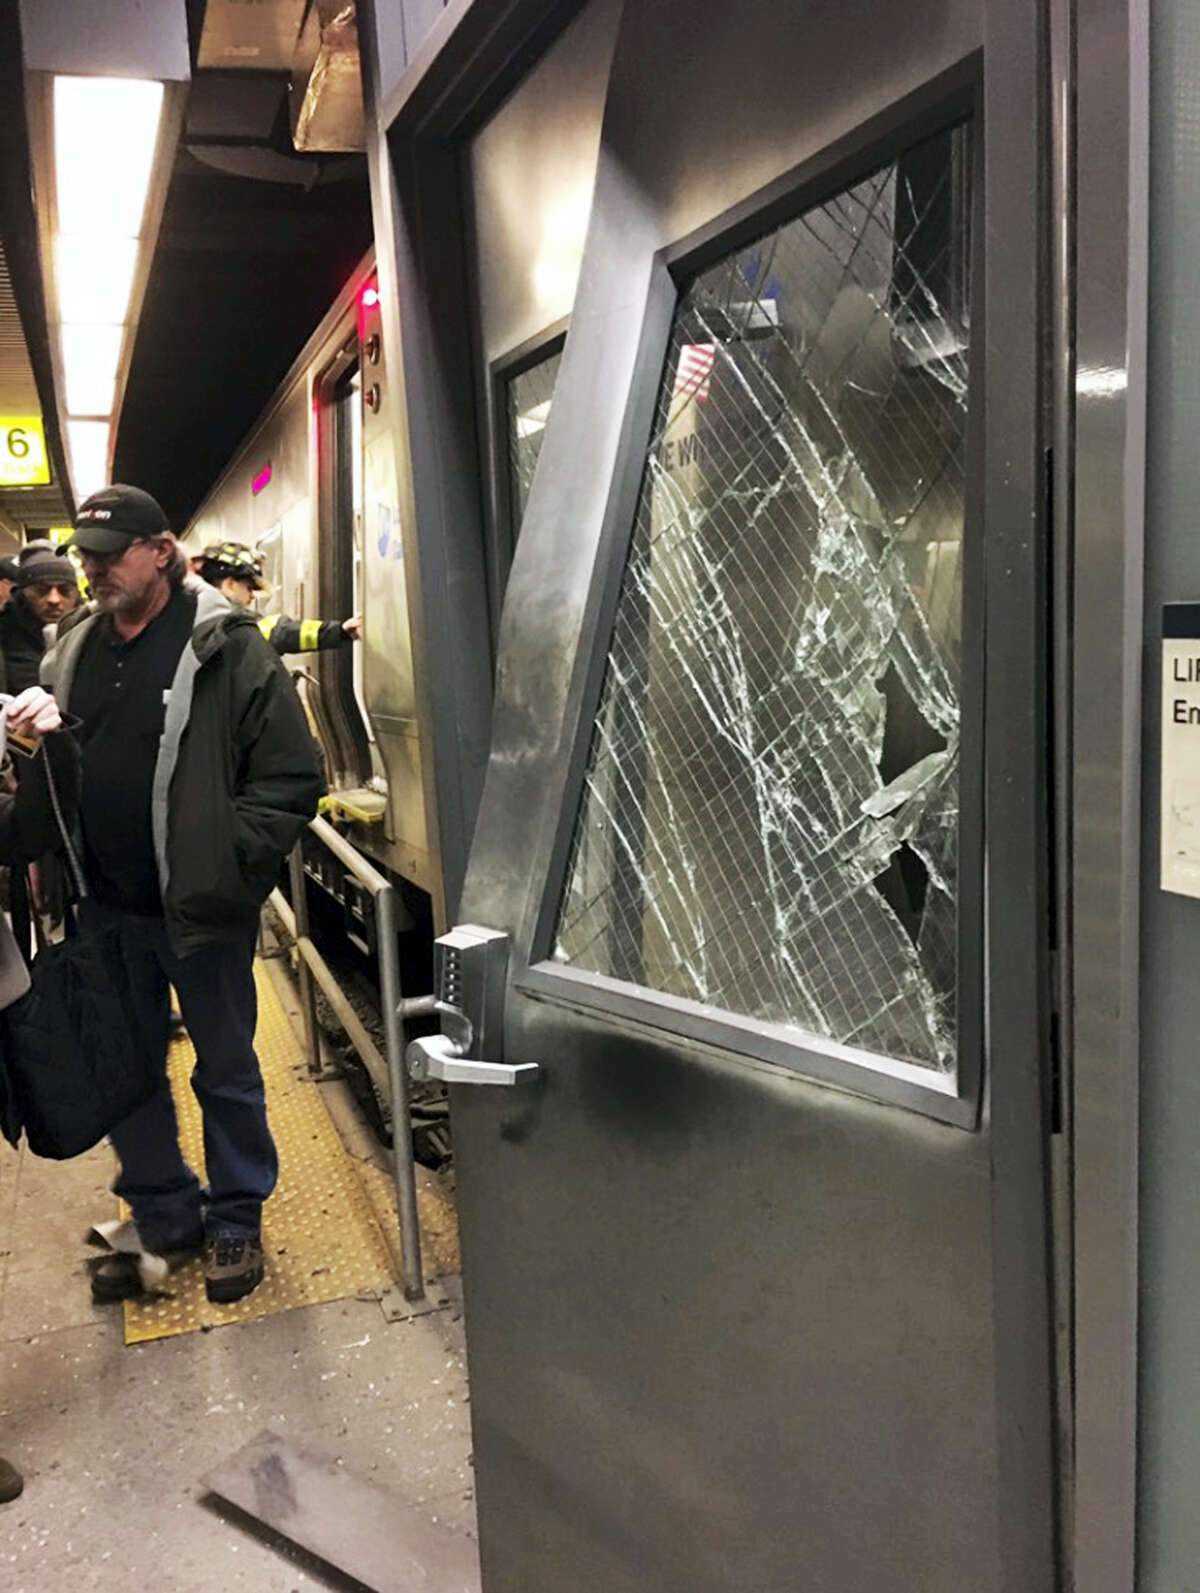 Emergency personnel work at the scene at Atlantic Terminal after New York City authorities said a Long Island Rail Road train hit a bumping block at the station in the Brooklyn borough of New York, Wednesday, Jan. 4, 2017.